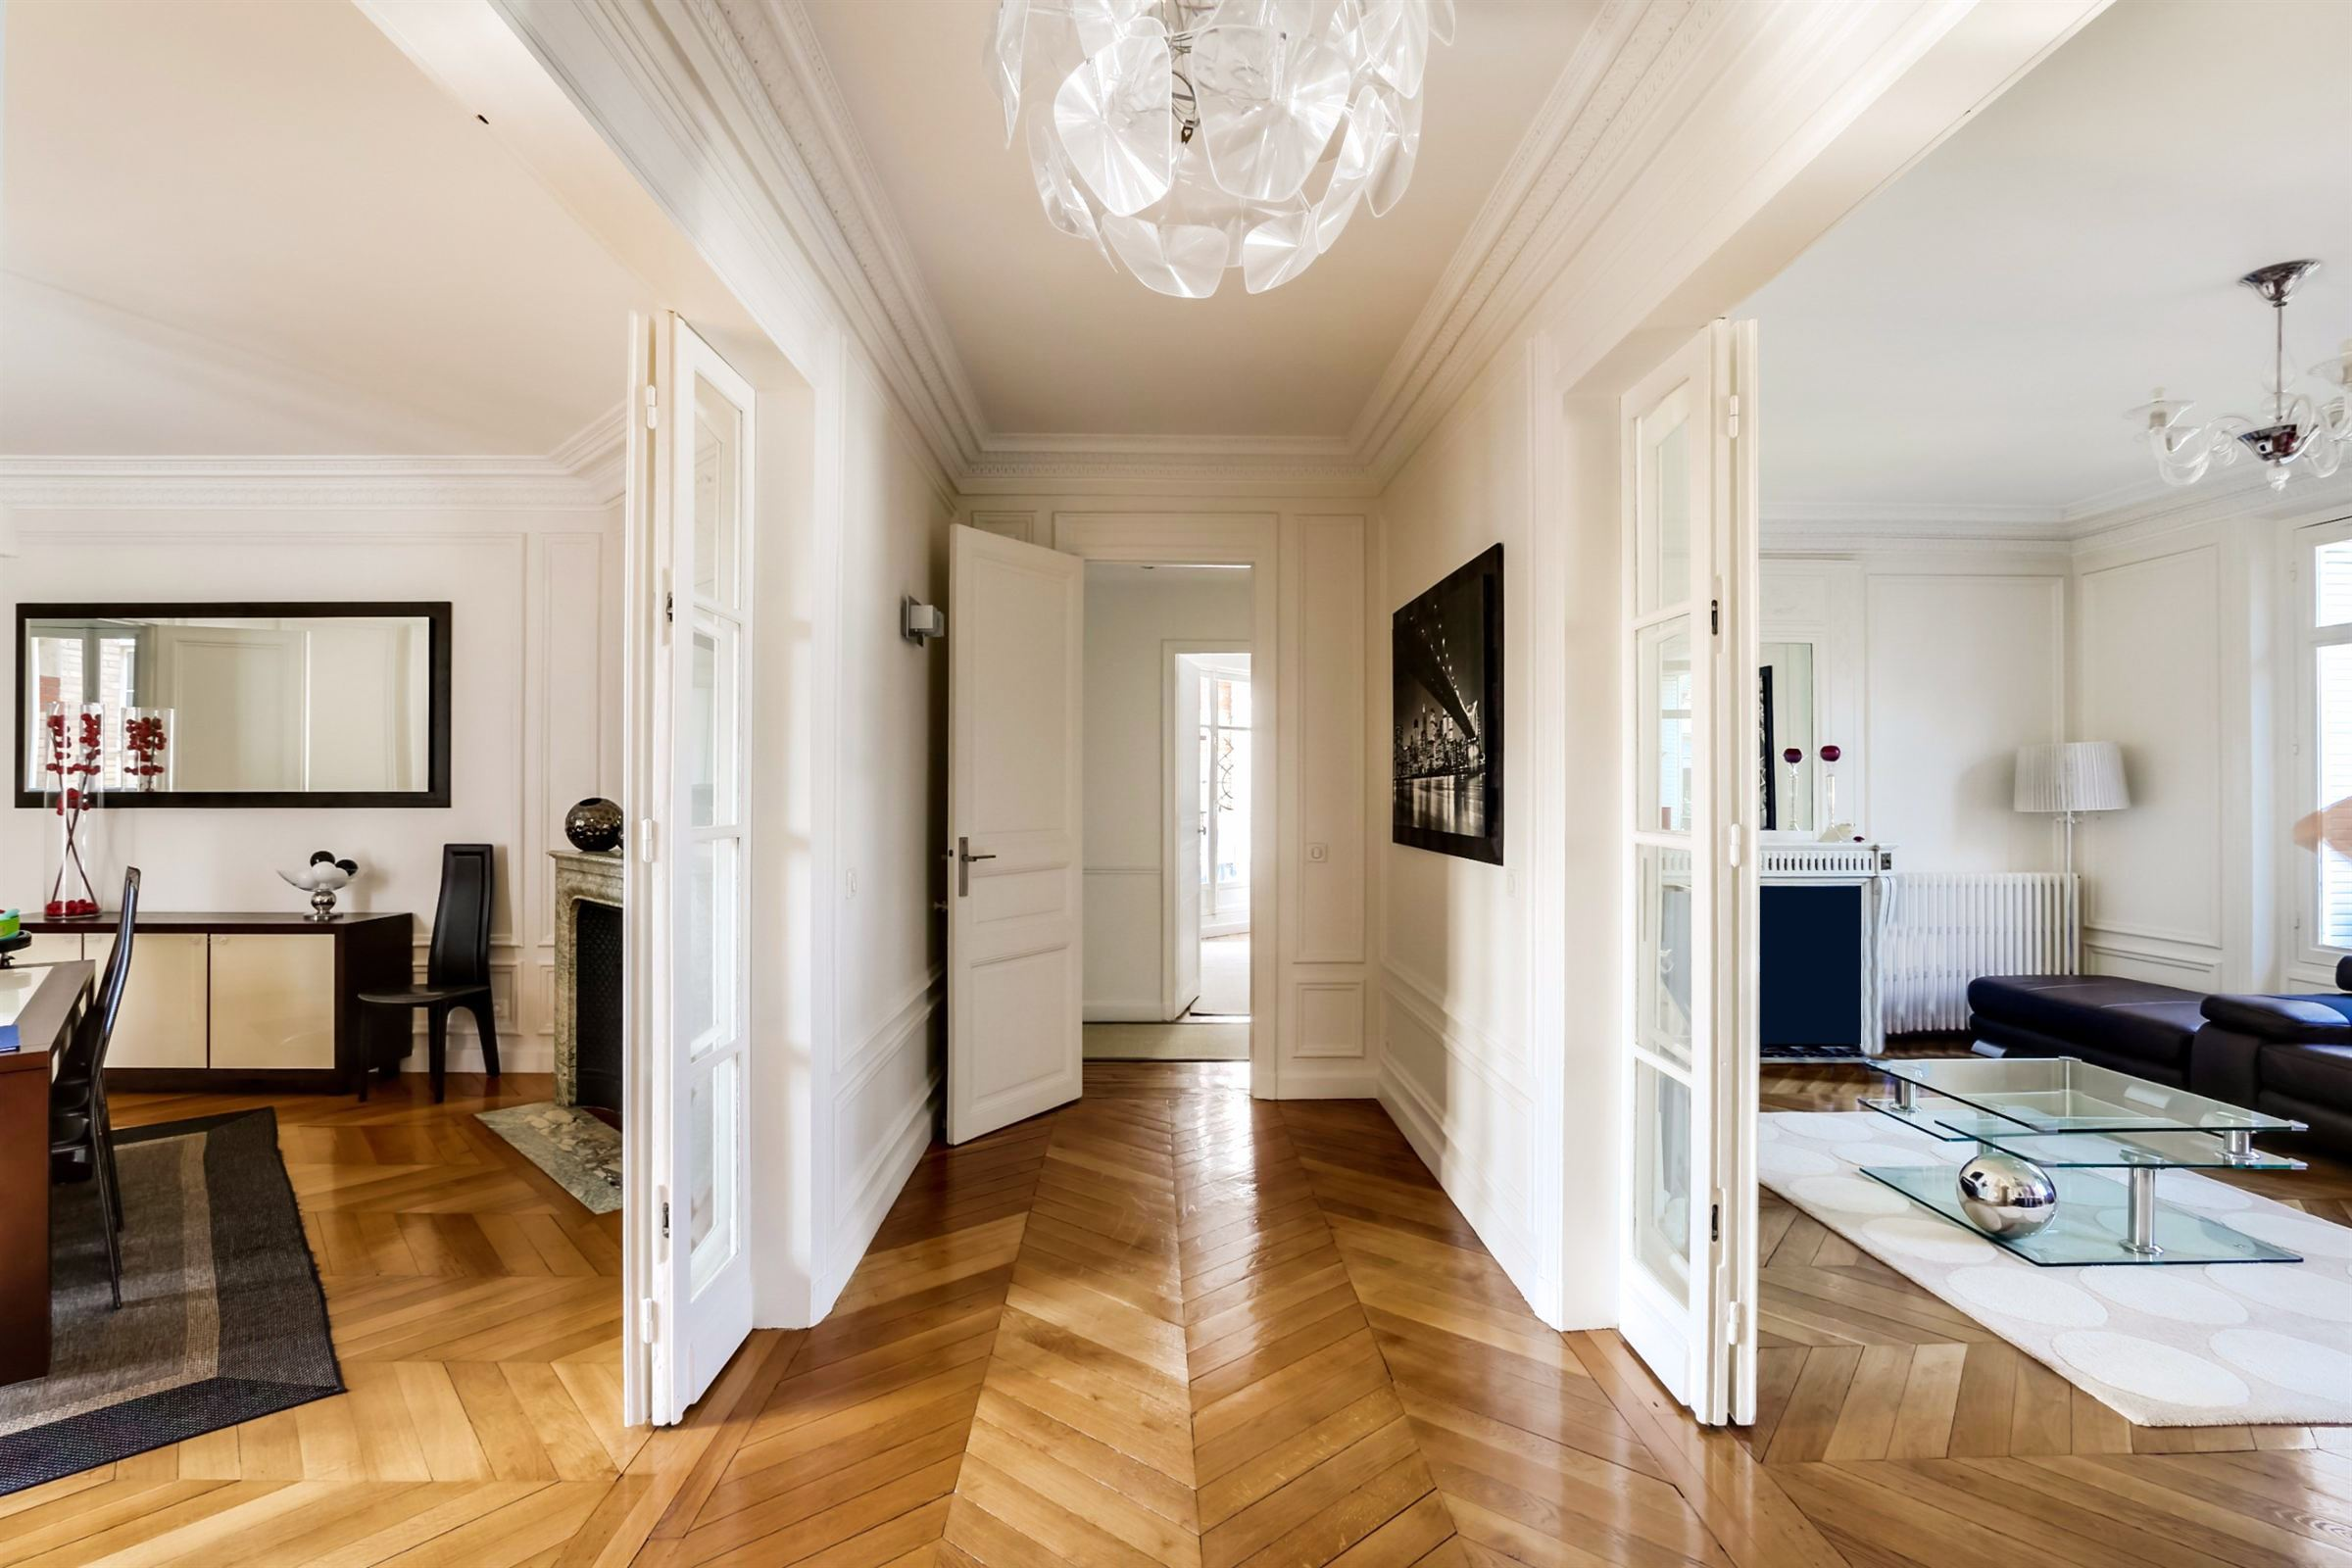 sales property at A through-apartment for sale in Neuilly-sur-Seine - City Hall